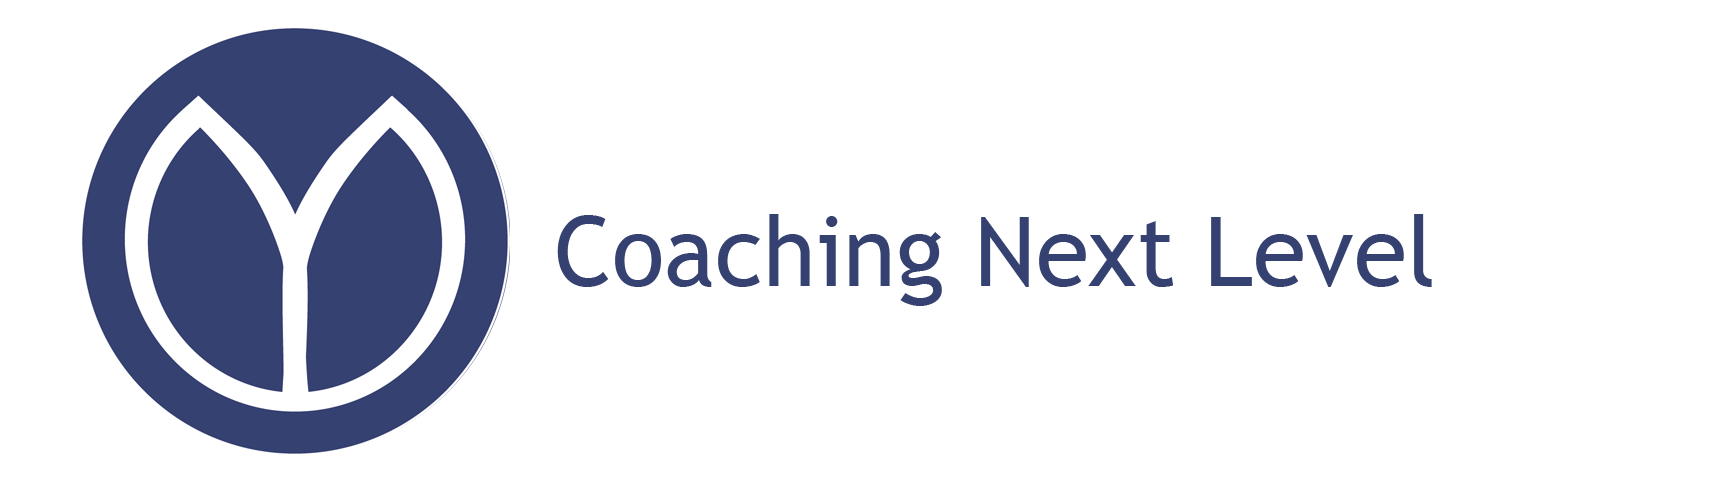 For professionals who love to coach